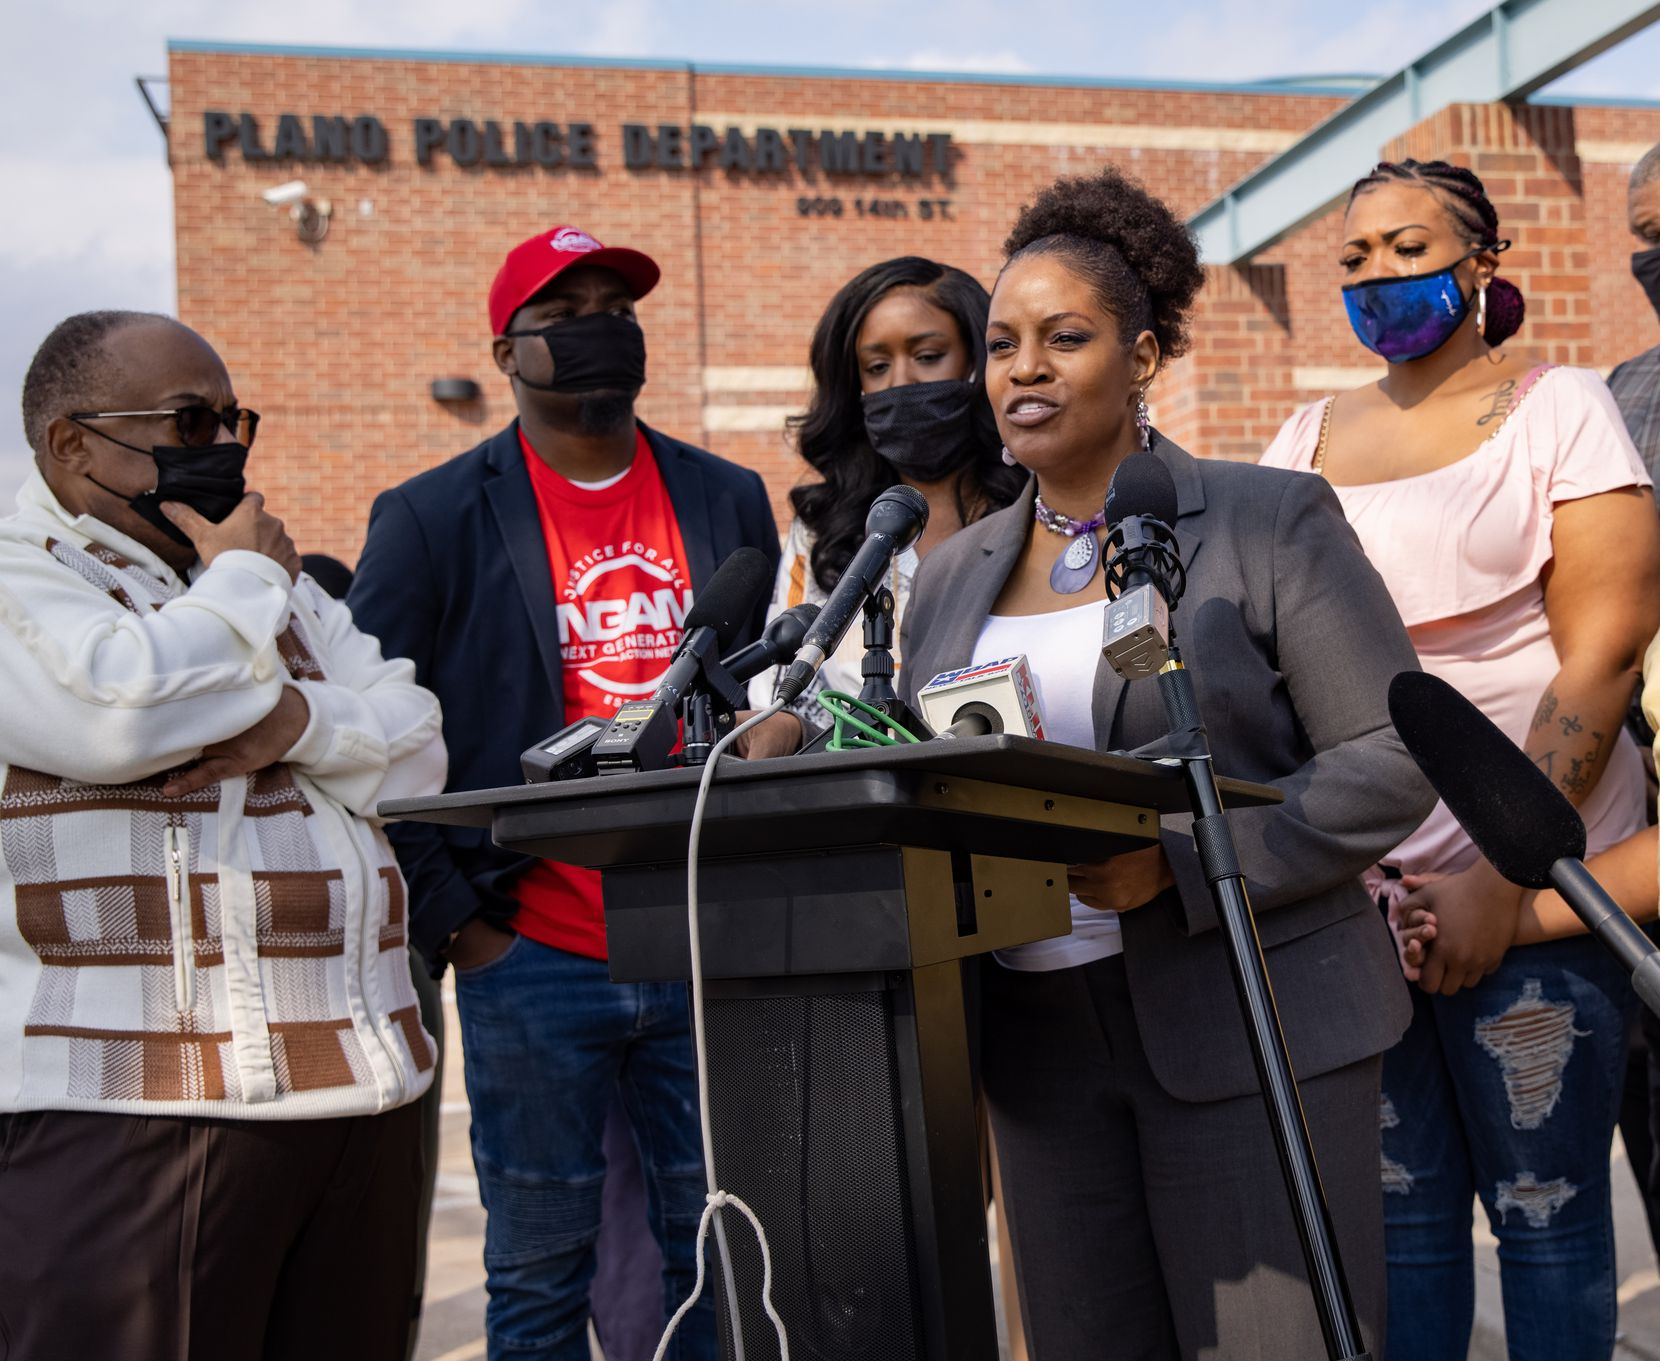 Summer Smith (right) cried as she held the hand of her son while listening to attorney Kim Cole speak during a news conference outside the Plano Police Department about the racist bullying and abuse Smith's 13-year-old son faced in March.